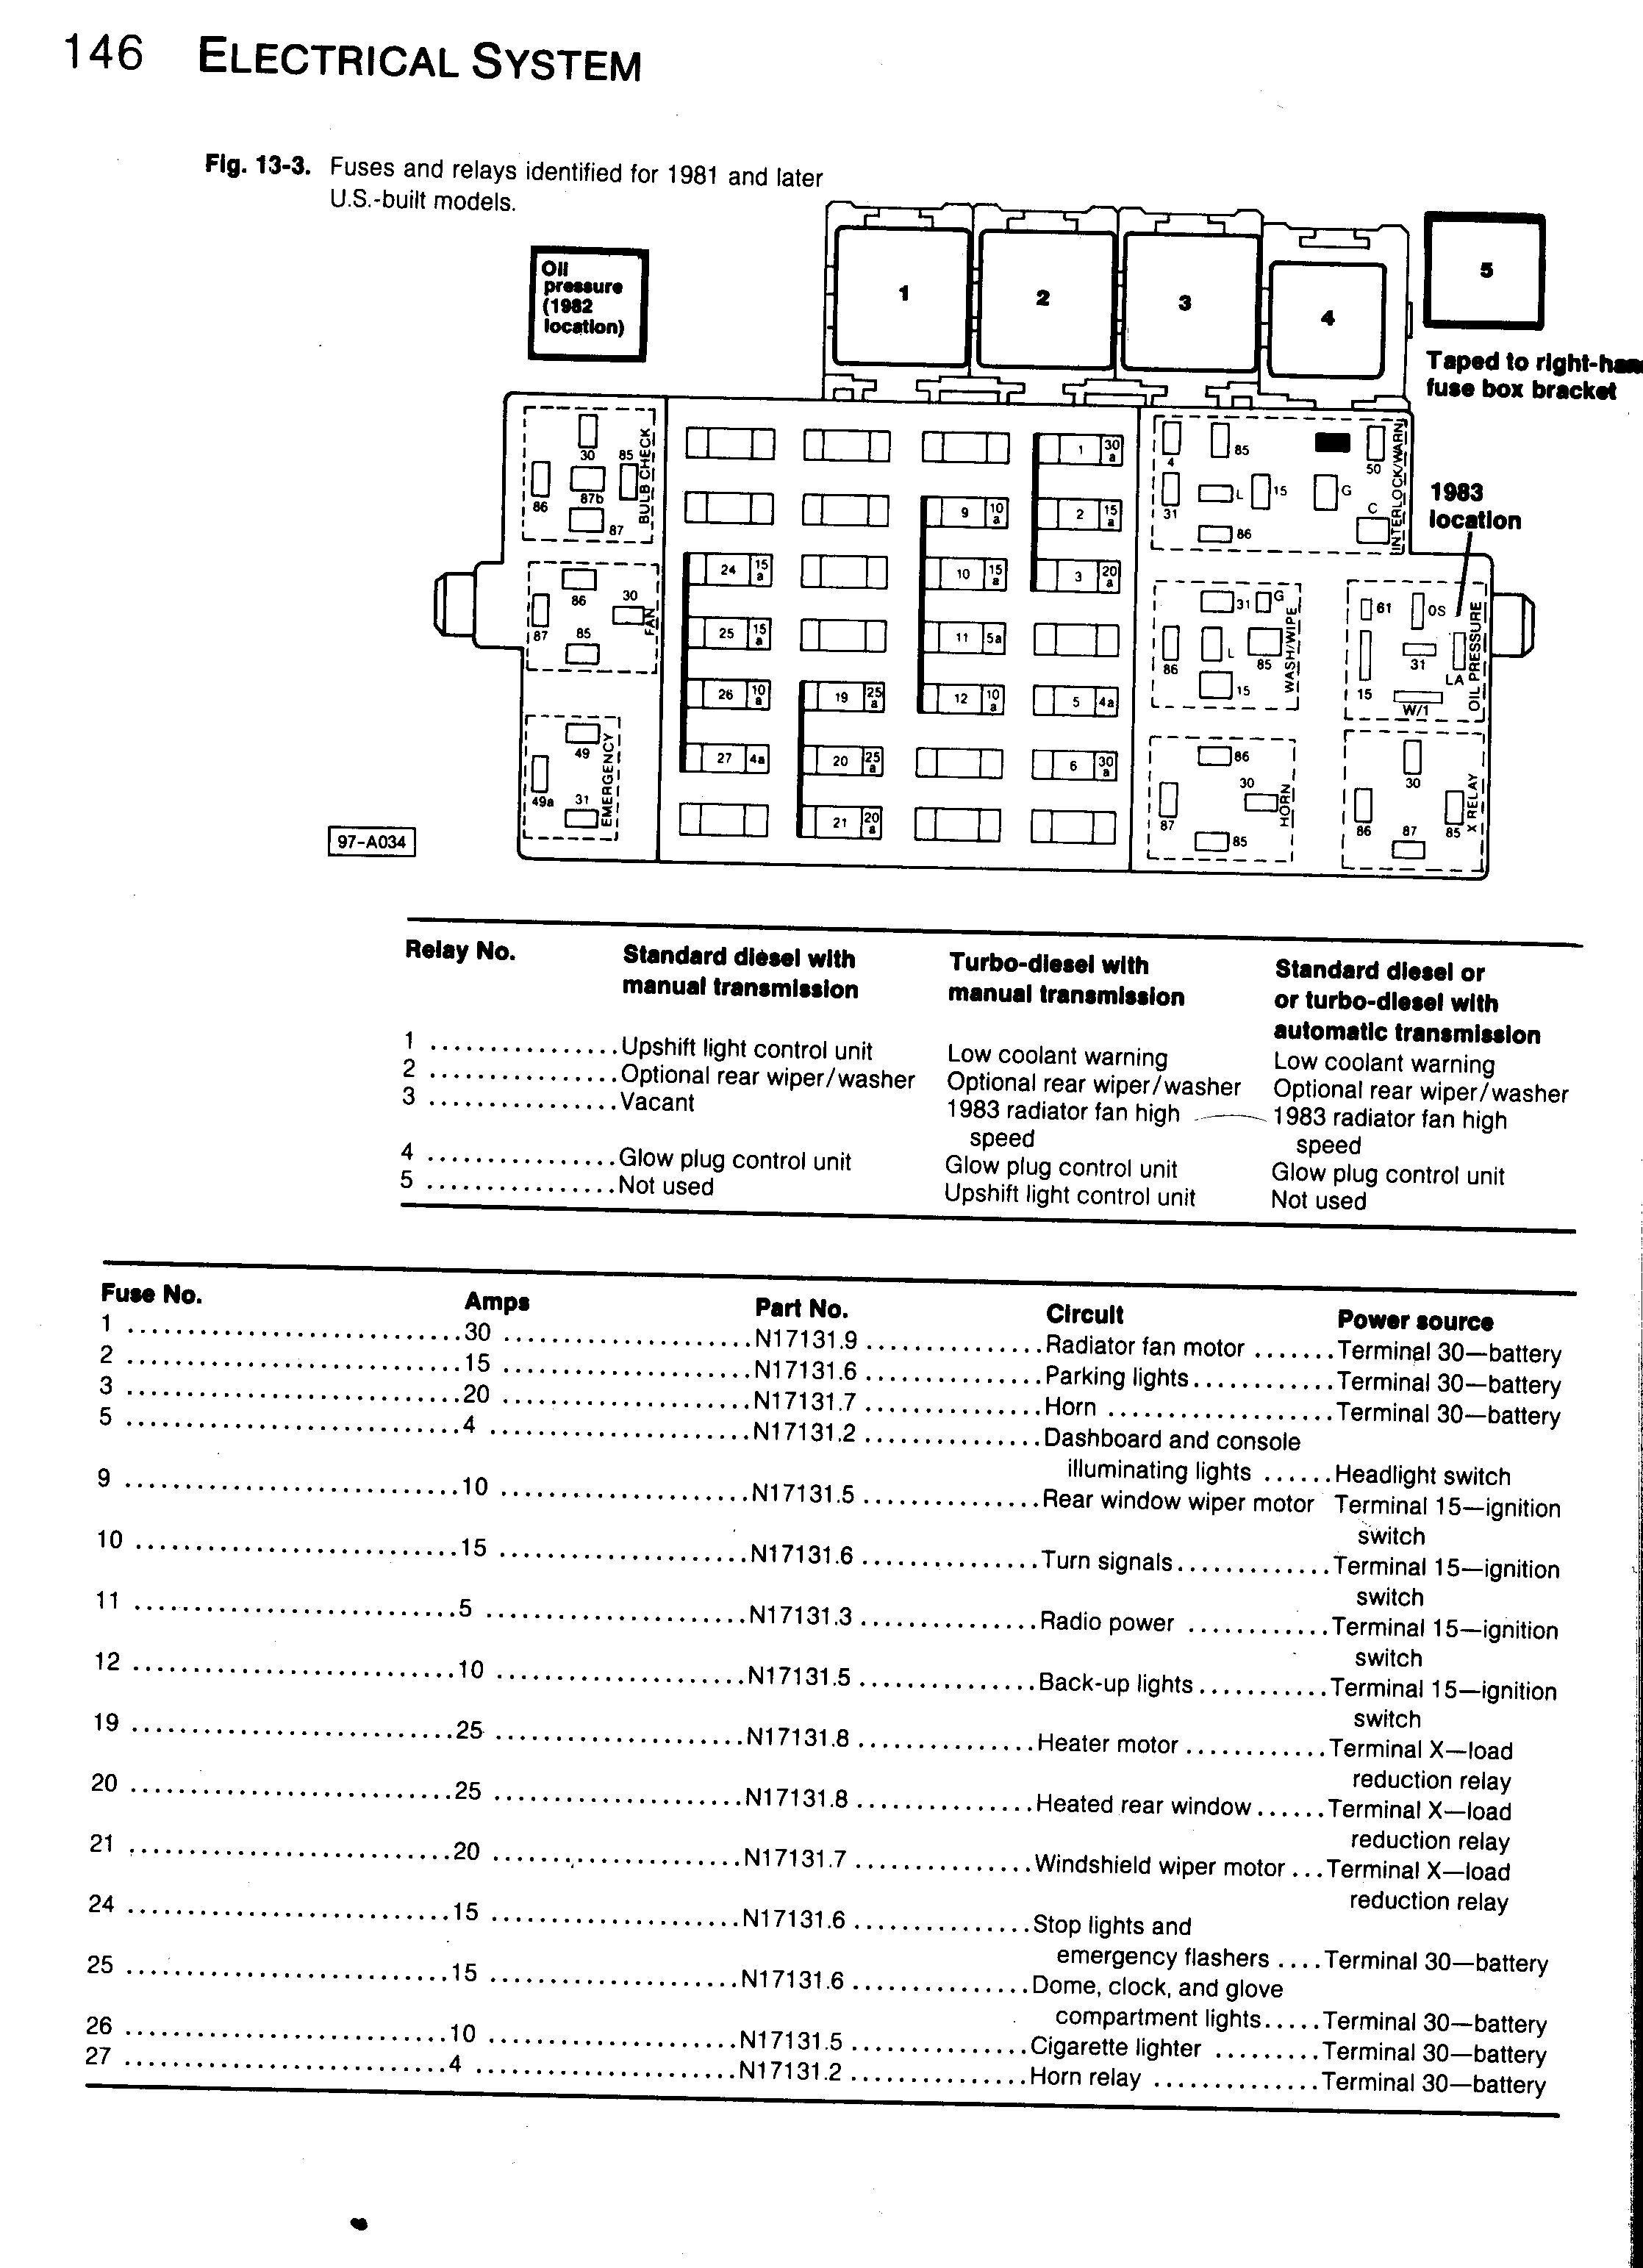 gli fuse box online schematics diagram rh delvato co 2012 Jetta Fuse Panel  Diagram 2006 VW